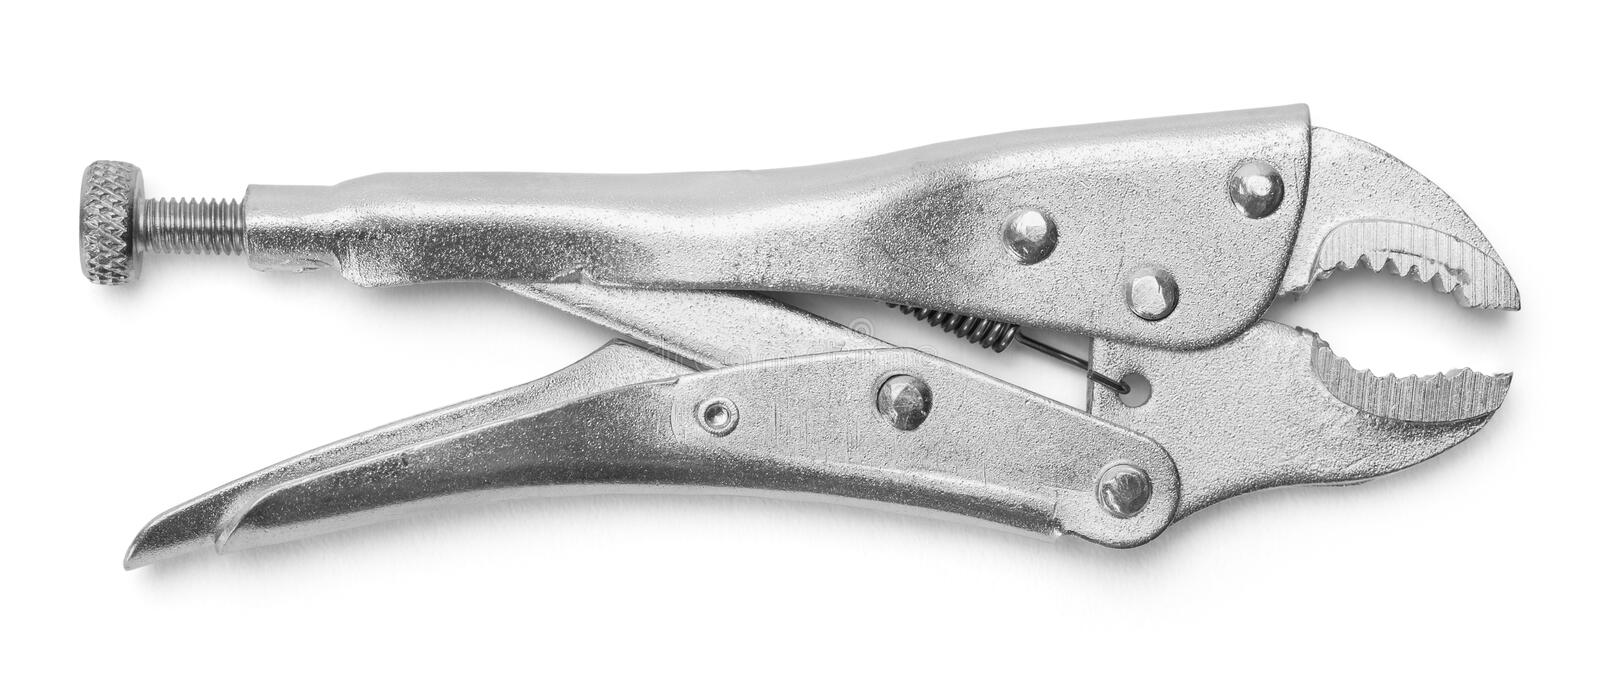 Pliers. Vise Grips Locking Pliers Isolated on a White Background royalty free stock images